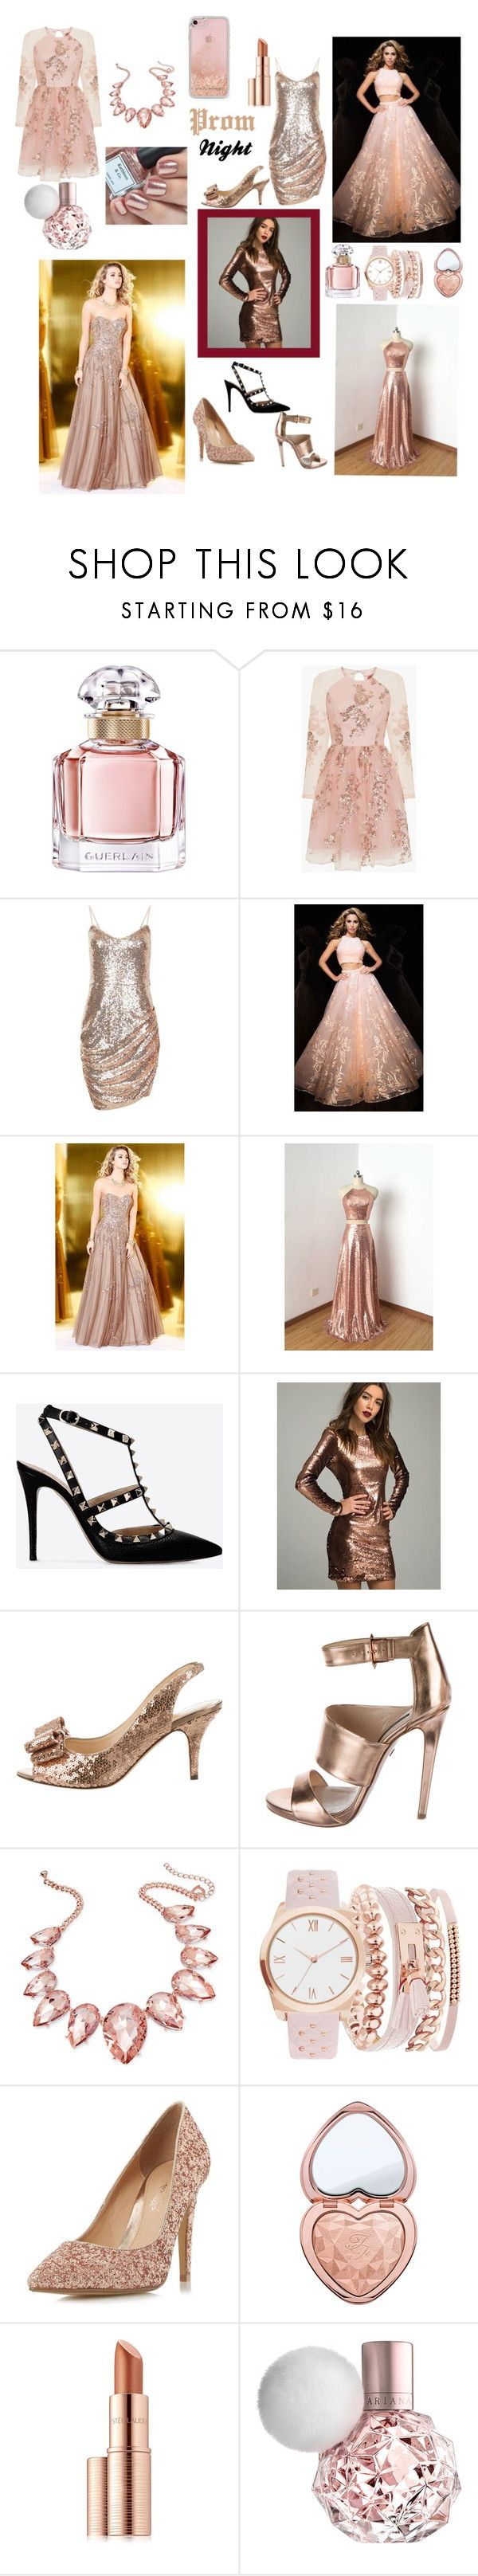 """Prom Night"" by whitecastlenine ❤ liked on Polyvore featuring Guerlain, Chi Chi, Tony Bowls, Valentino, Kate Spade, Ruthie Davis, Thalia Sodi, A.X.N.Y., Head Over Heels by Dune and Too Faced Cosmetics"